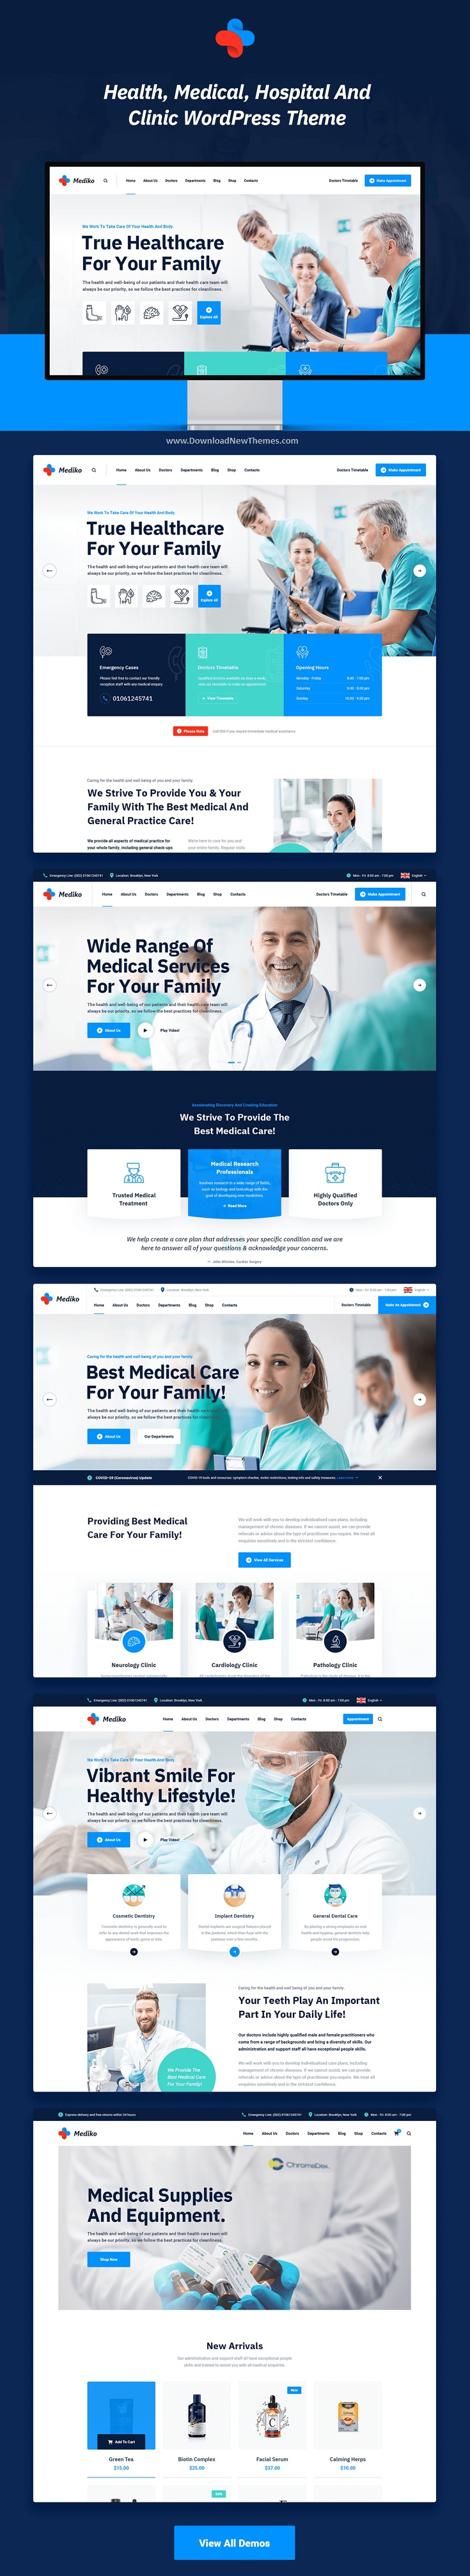 Health & Medical Premium WordPress Theme